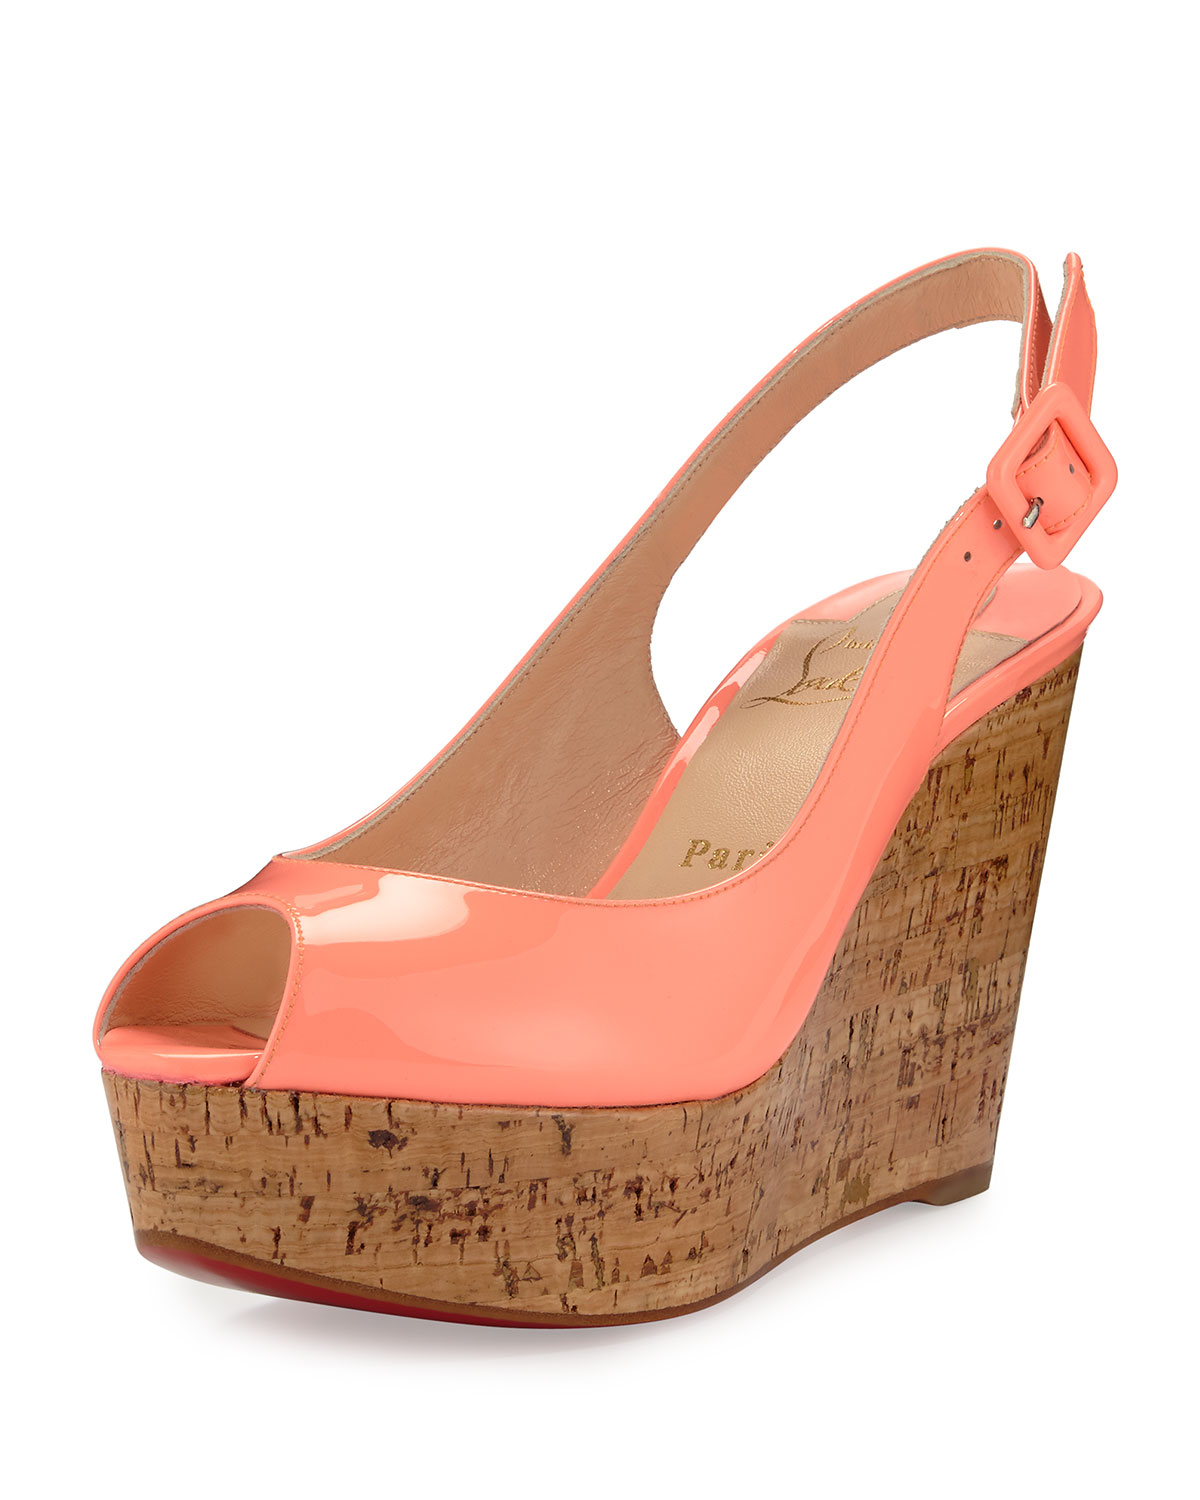 251c984d63b Lyst - Christian Louboutin Une Plume Patent Peep-toe Red Sole Wedge ...